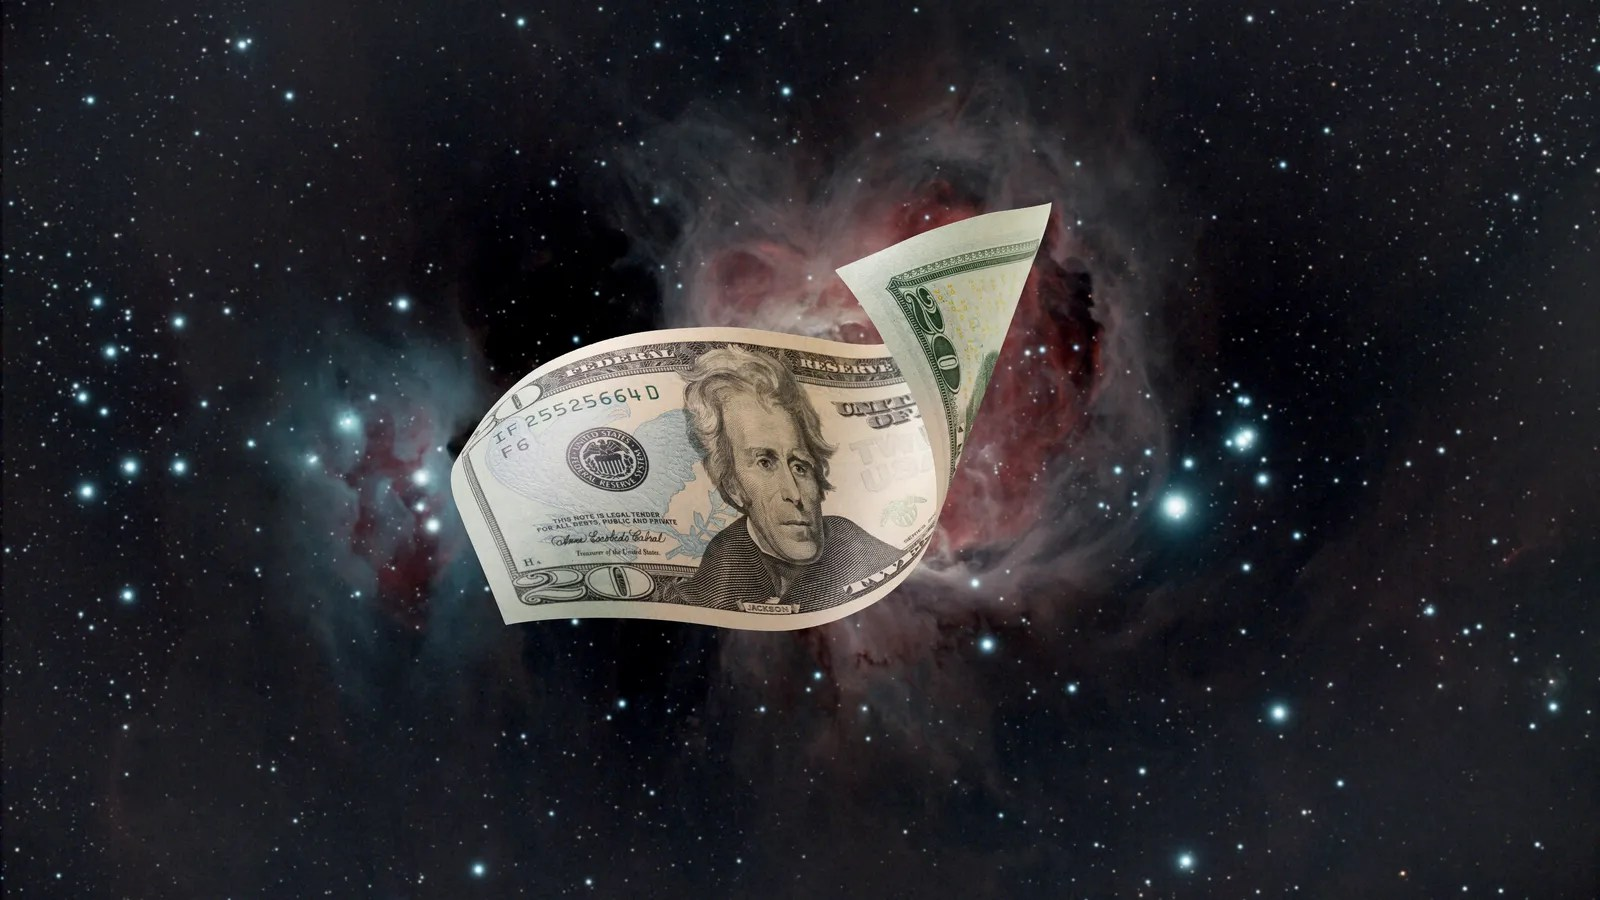 Science Ftw The Hubble Space Telescope Found A 20 Bill